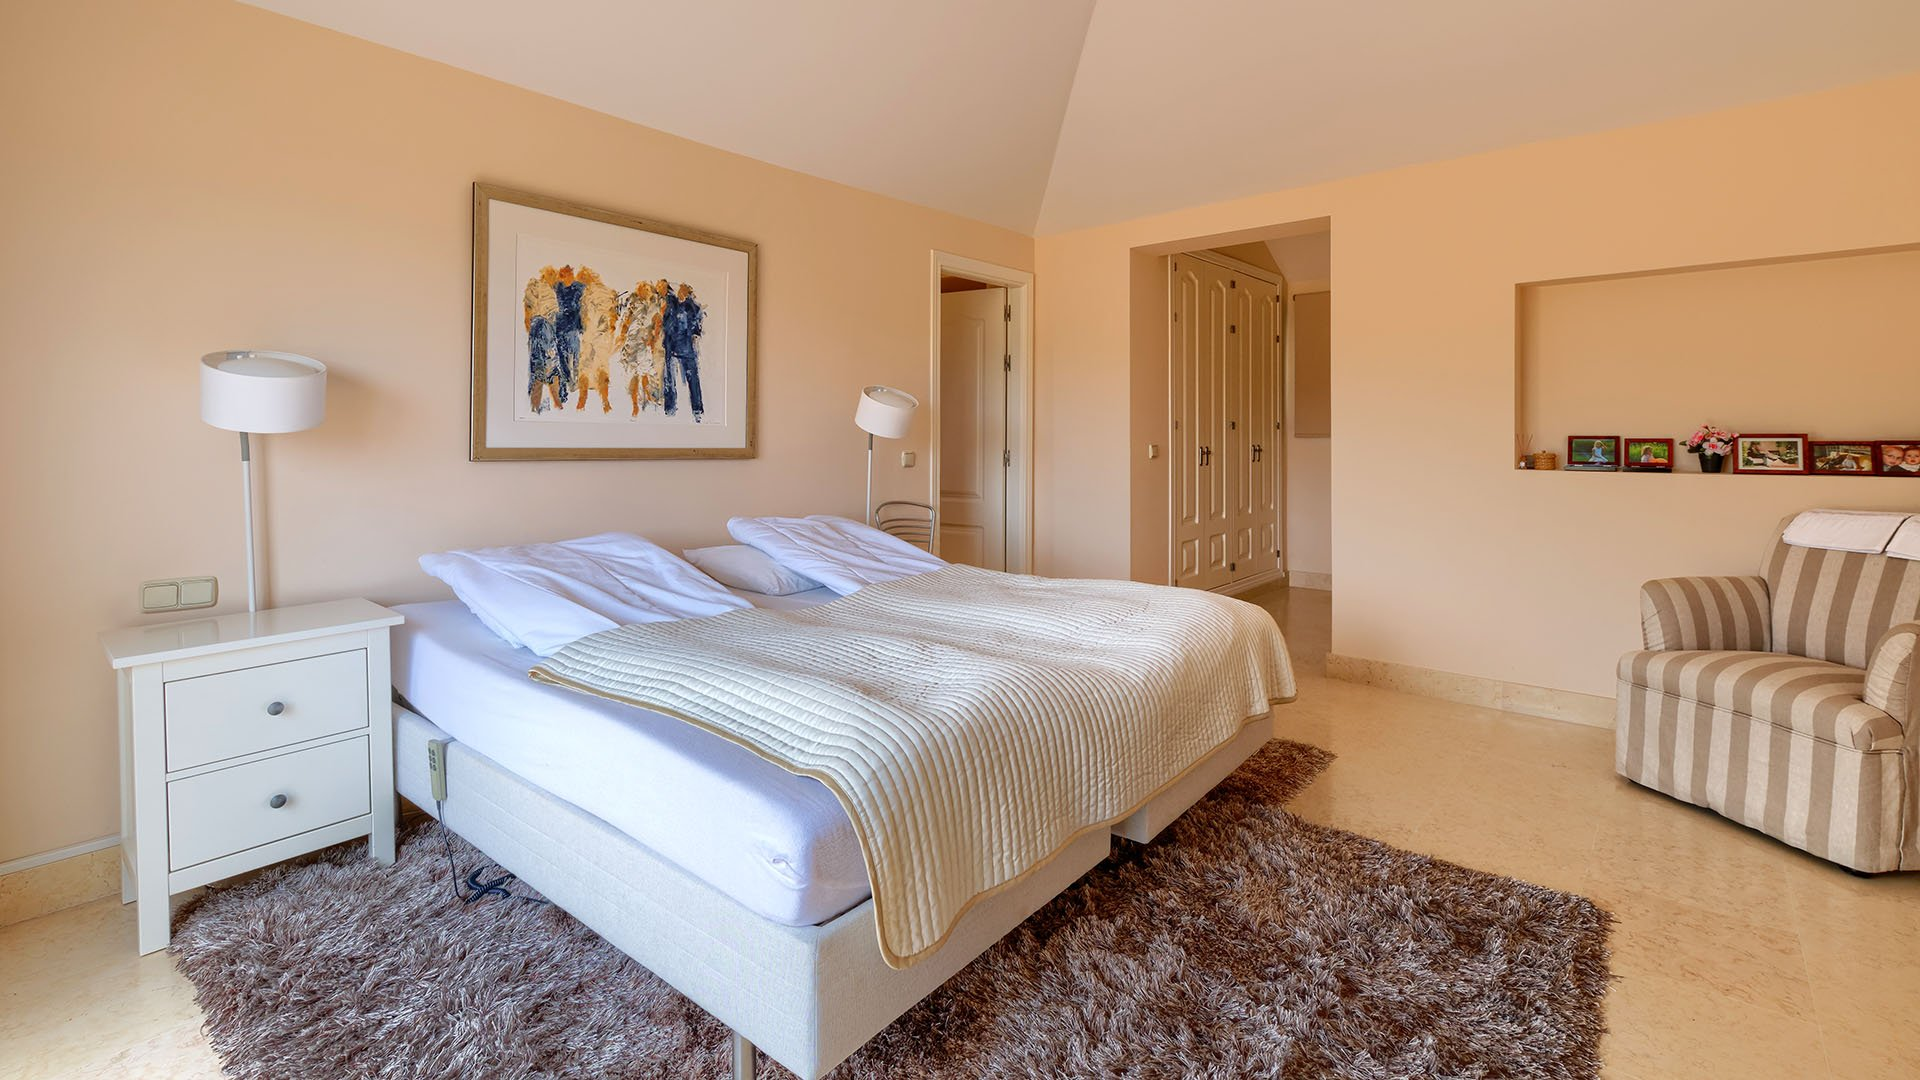 Capanes del Golf: Well located duplex penthouse with beautiful view over golf in Benahavís